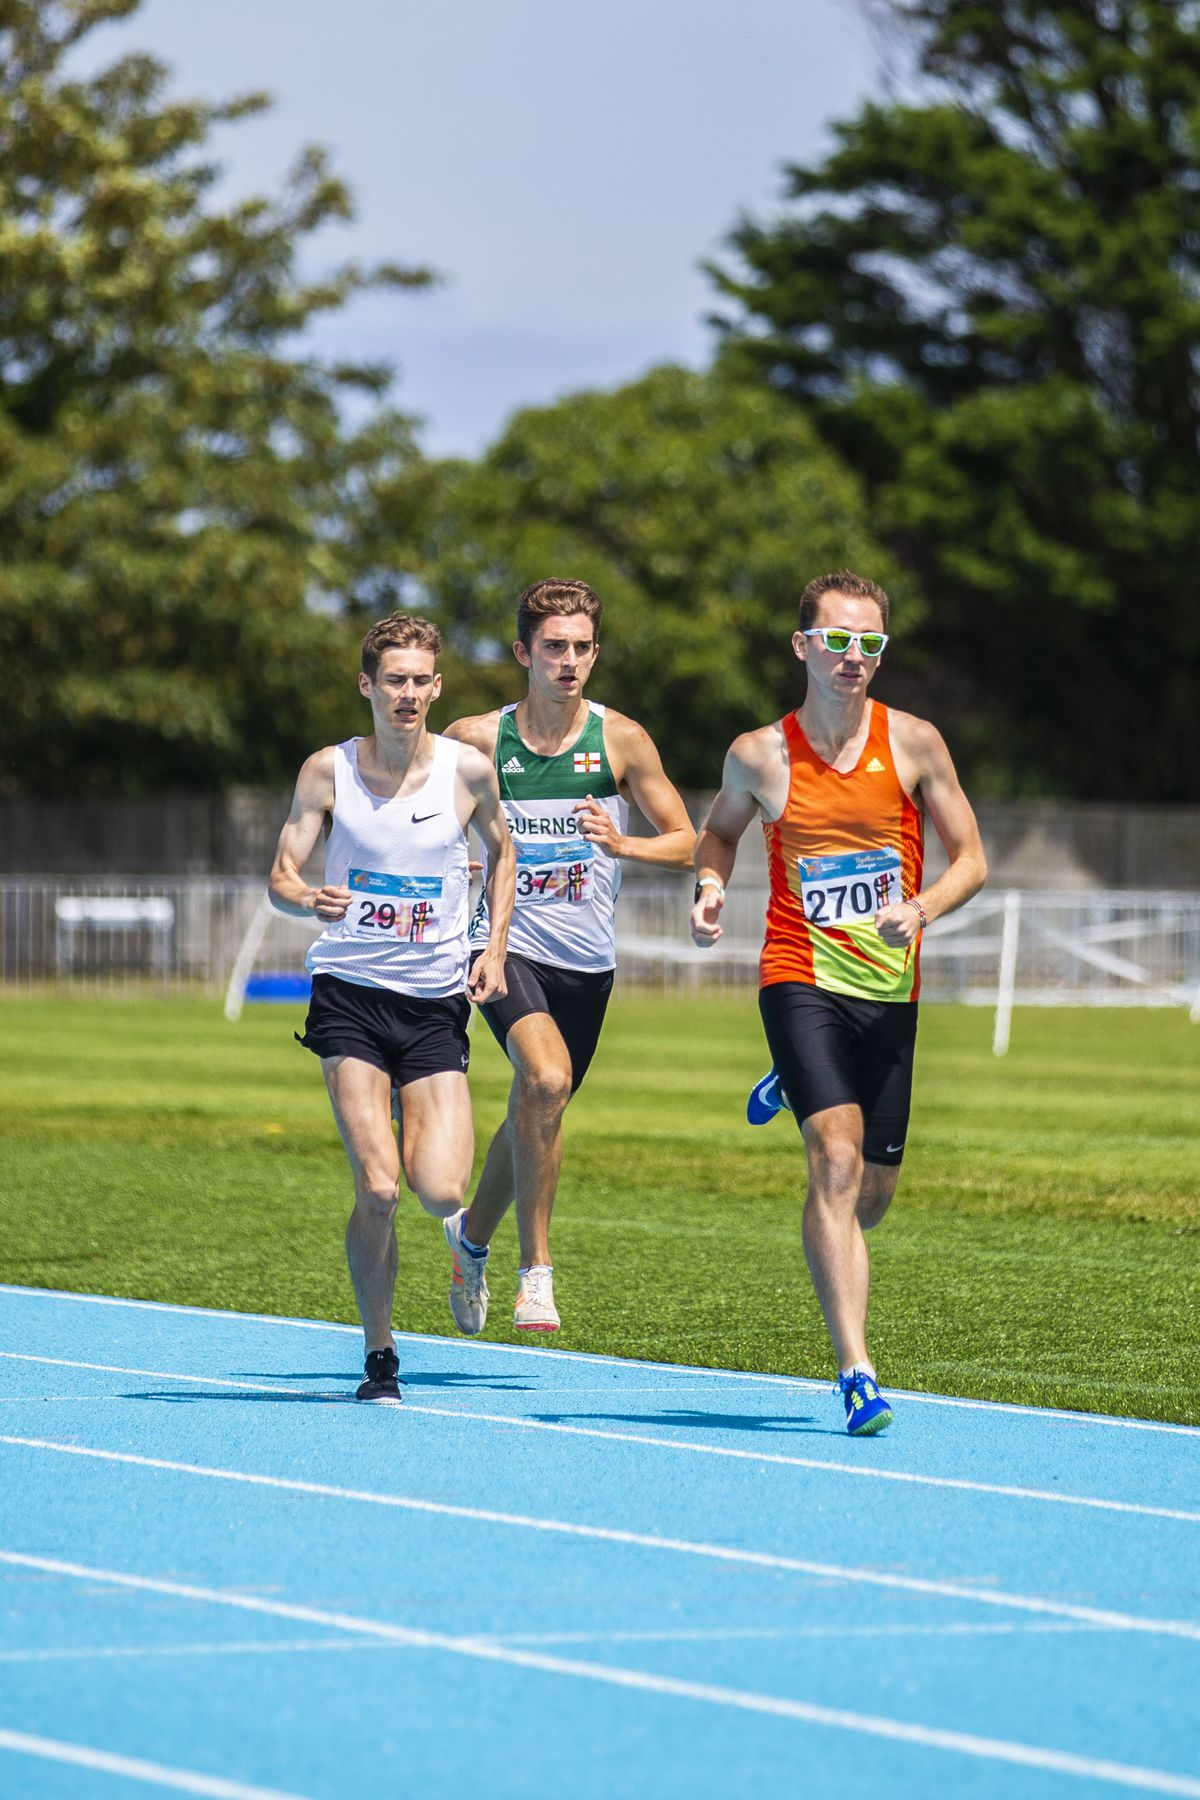 Will Bodkin, right, seen here in action on the track, is back to his very best and showed it on the coastal road stretch. (Picture by Sophie Rabey, 28580928)